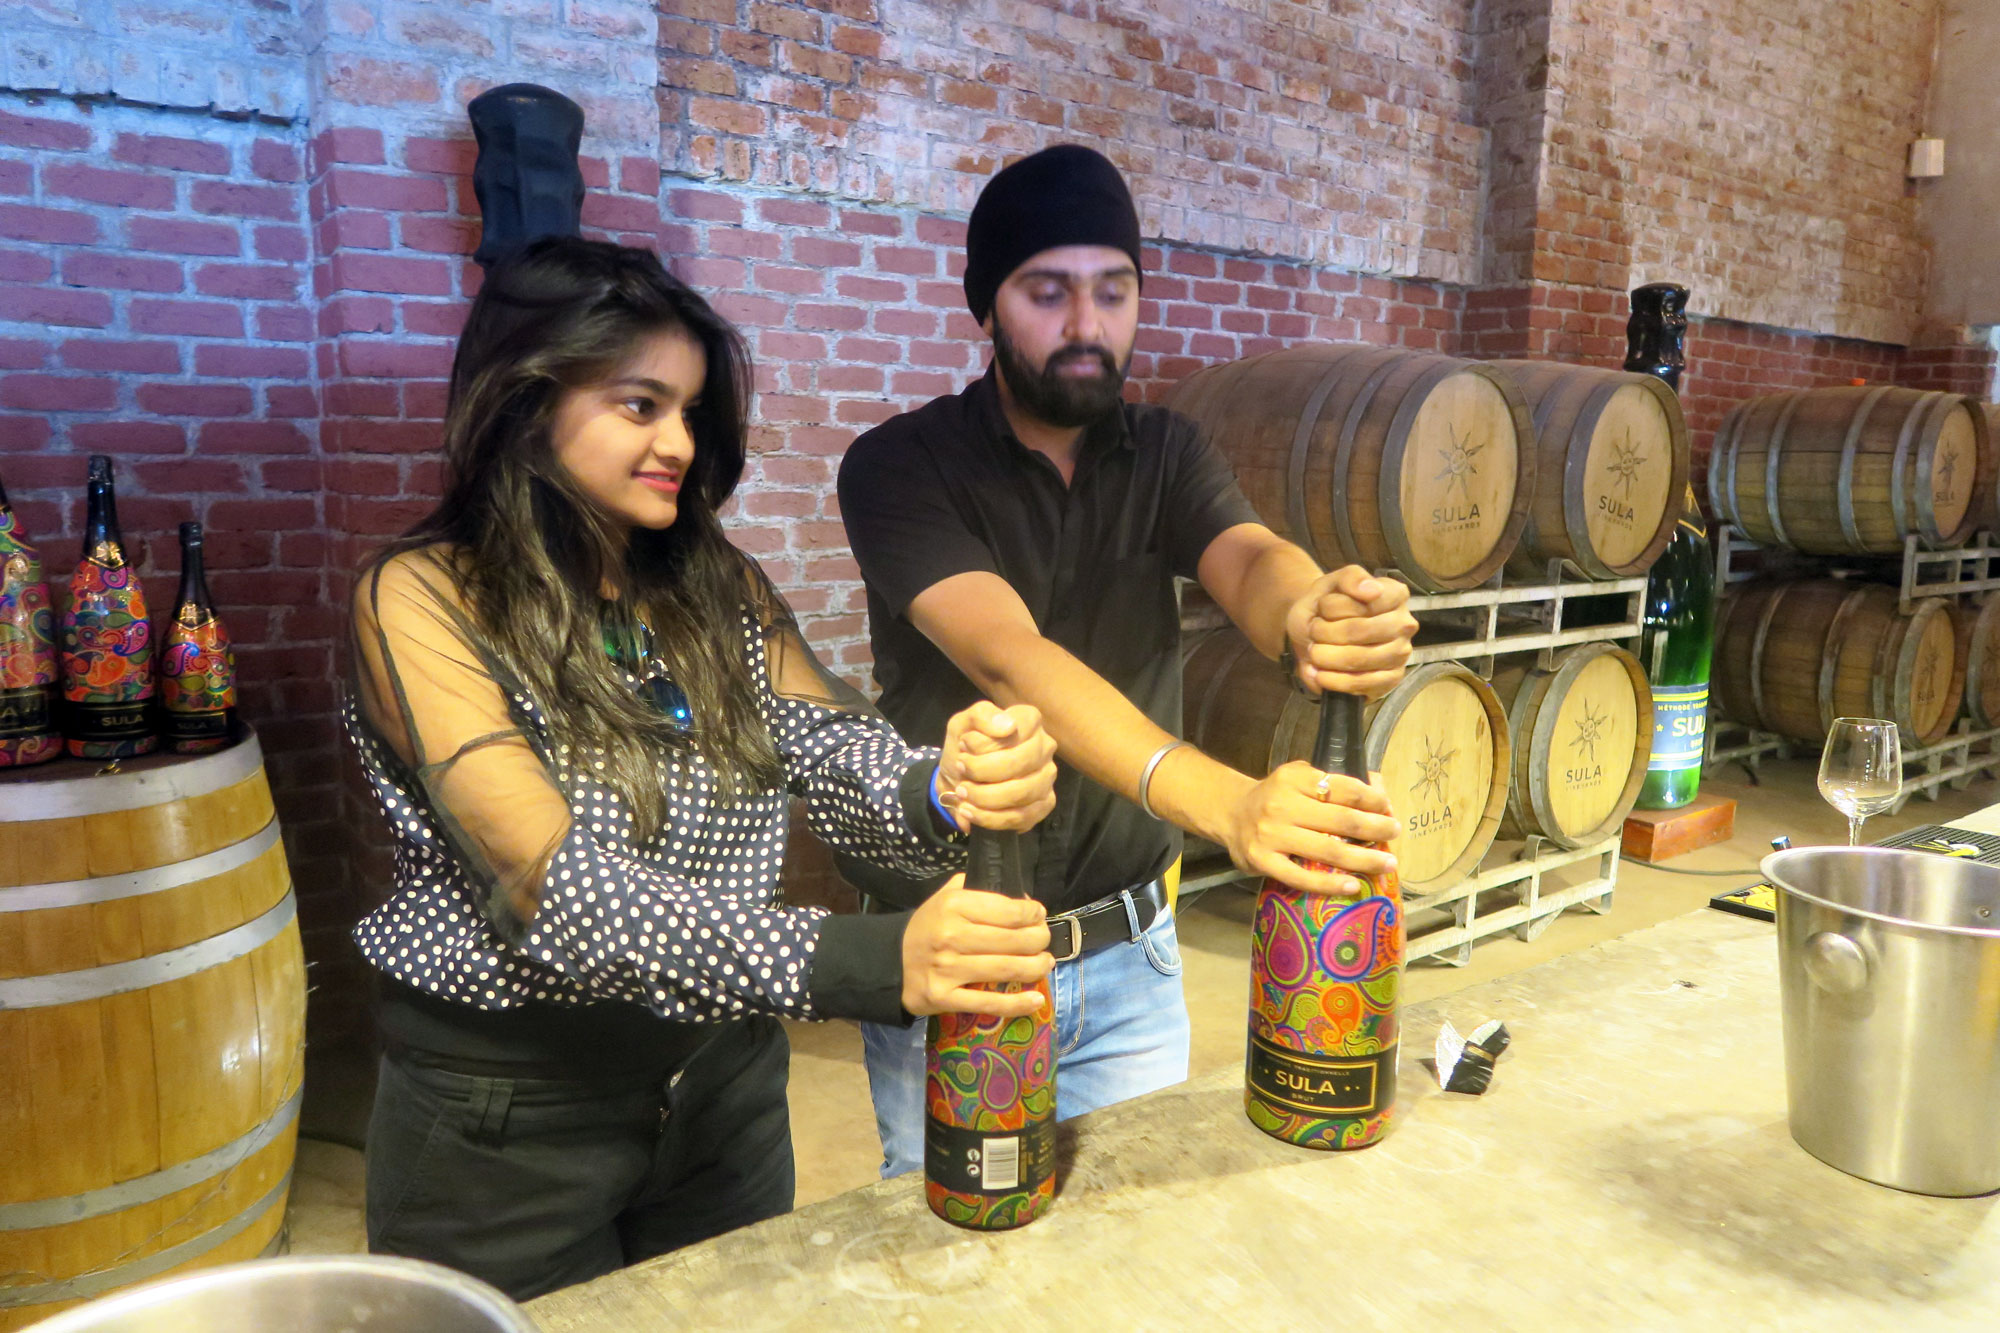 indian-vineyard-Indor-Surname-shows-Kritika-Patel-how-to-open-a-bottle-of-sparkling-wine